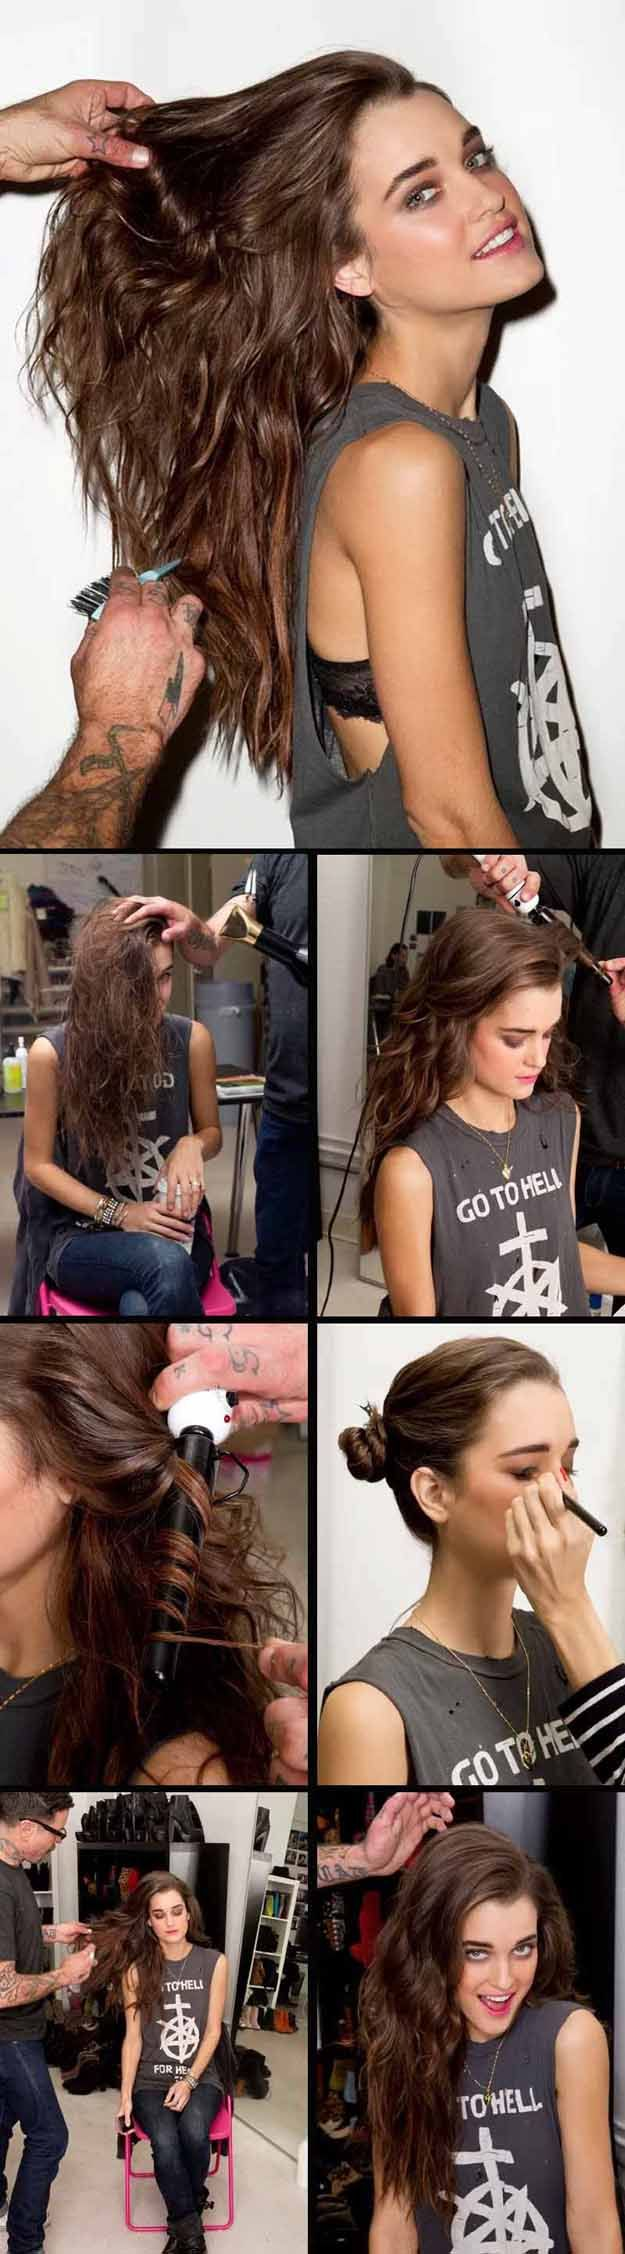 Long Wavy Hairstyles - Big Messy Waves - Beautiful Long Layered Haircuts And Long Wavy Haircuts With Layers And With Bangs. Half Up Bob Tutorial For Wedding, Prom, Or For Homecoming. No Heat Wavy Hairstyles That Are Gorgeous And Natural. Black, Blonde, And Brunette Long Wavy Hairstyles For Round Face, With Braid, With Ponytail, and With Medium Length Hair. DIY Ideas For That Boho Look, Or Updos For Medium Length Hair. Add More Volume For Thin Hair With Waves And Curls…